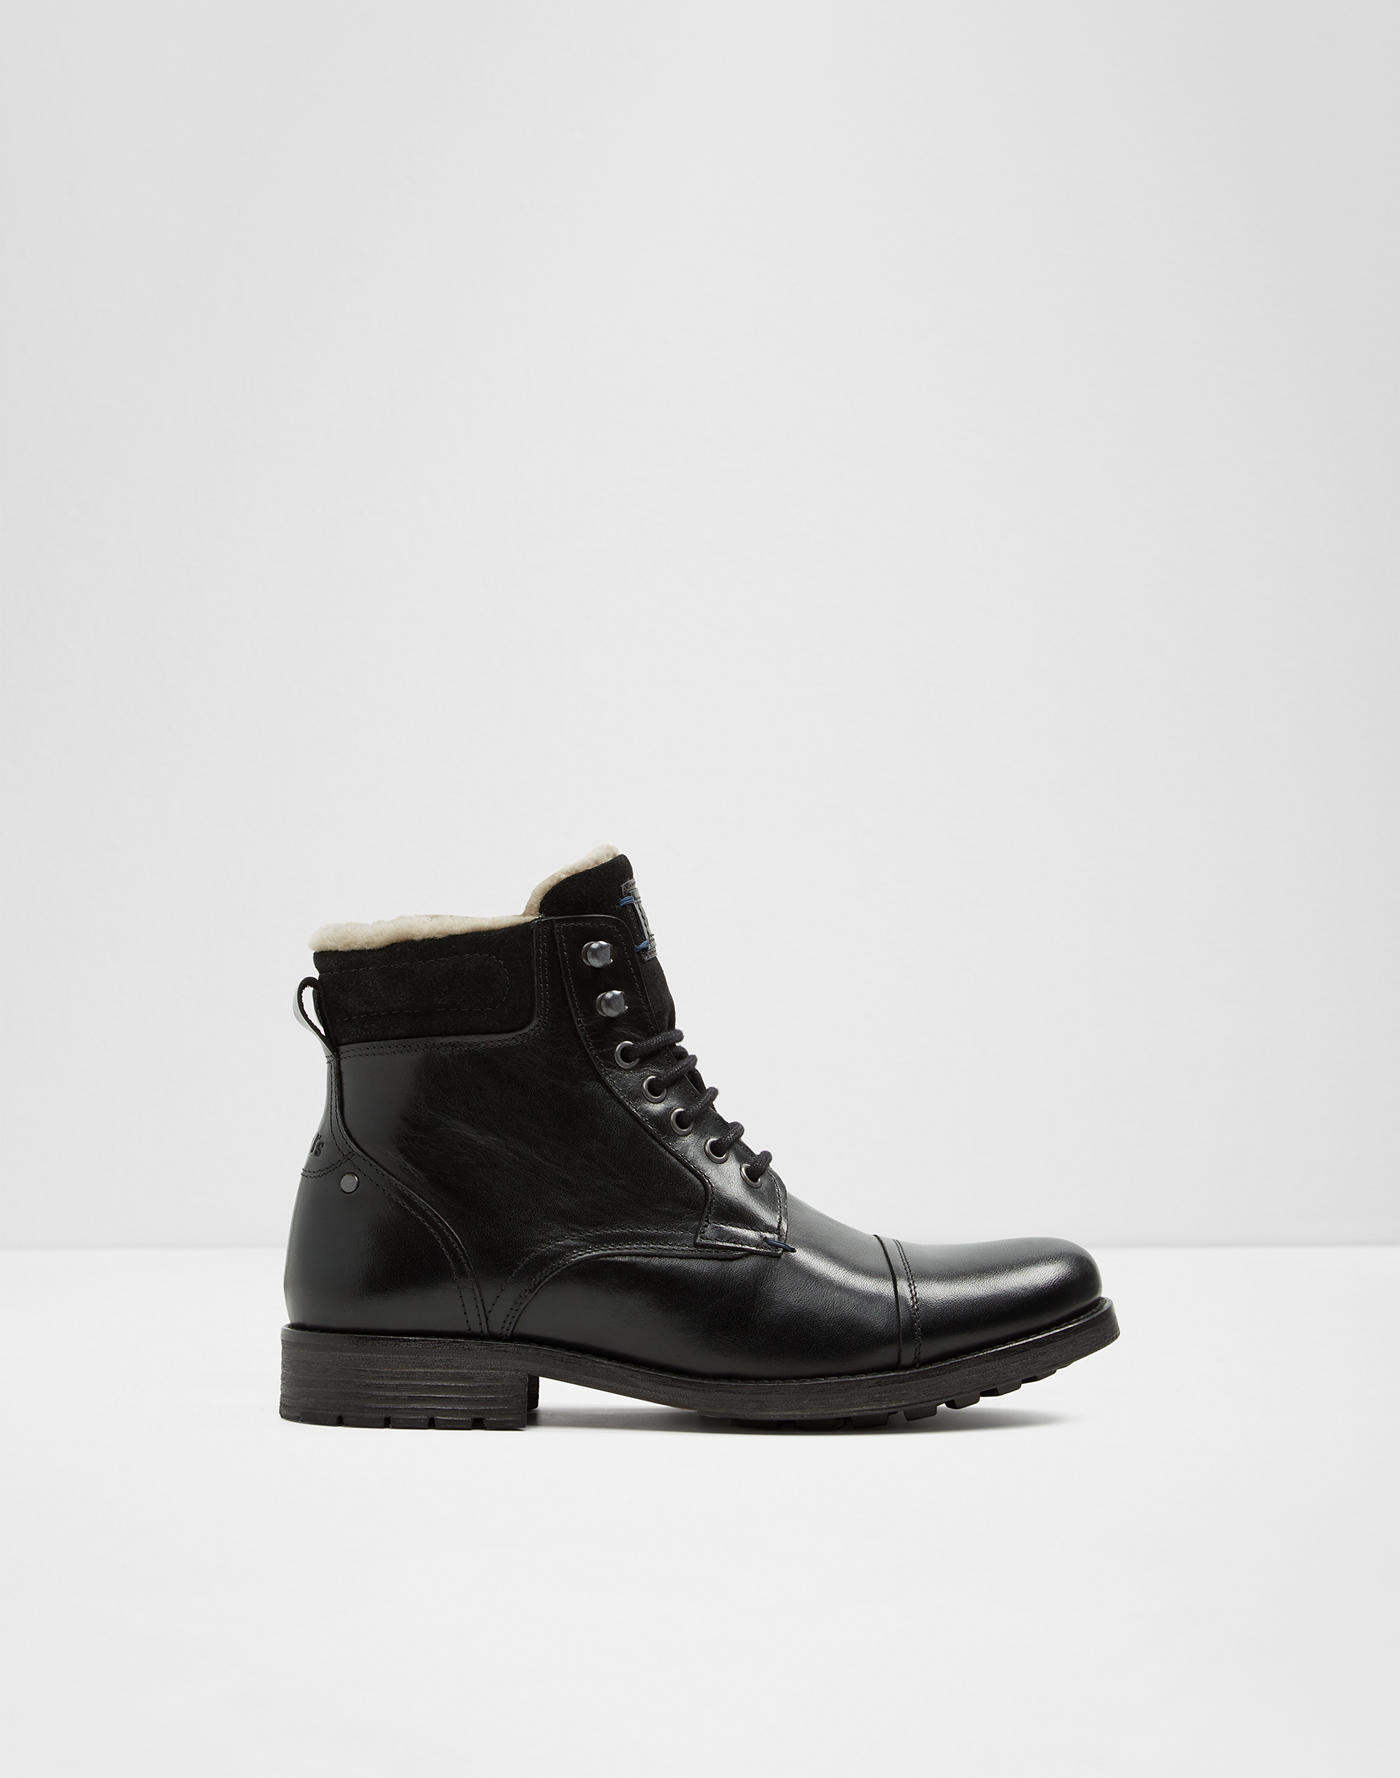 8bf04c83f9 Boots